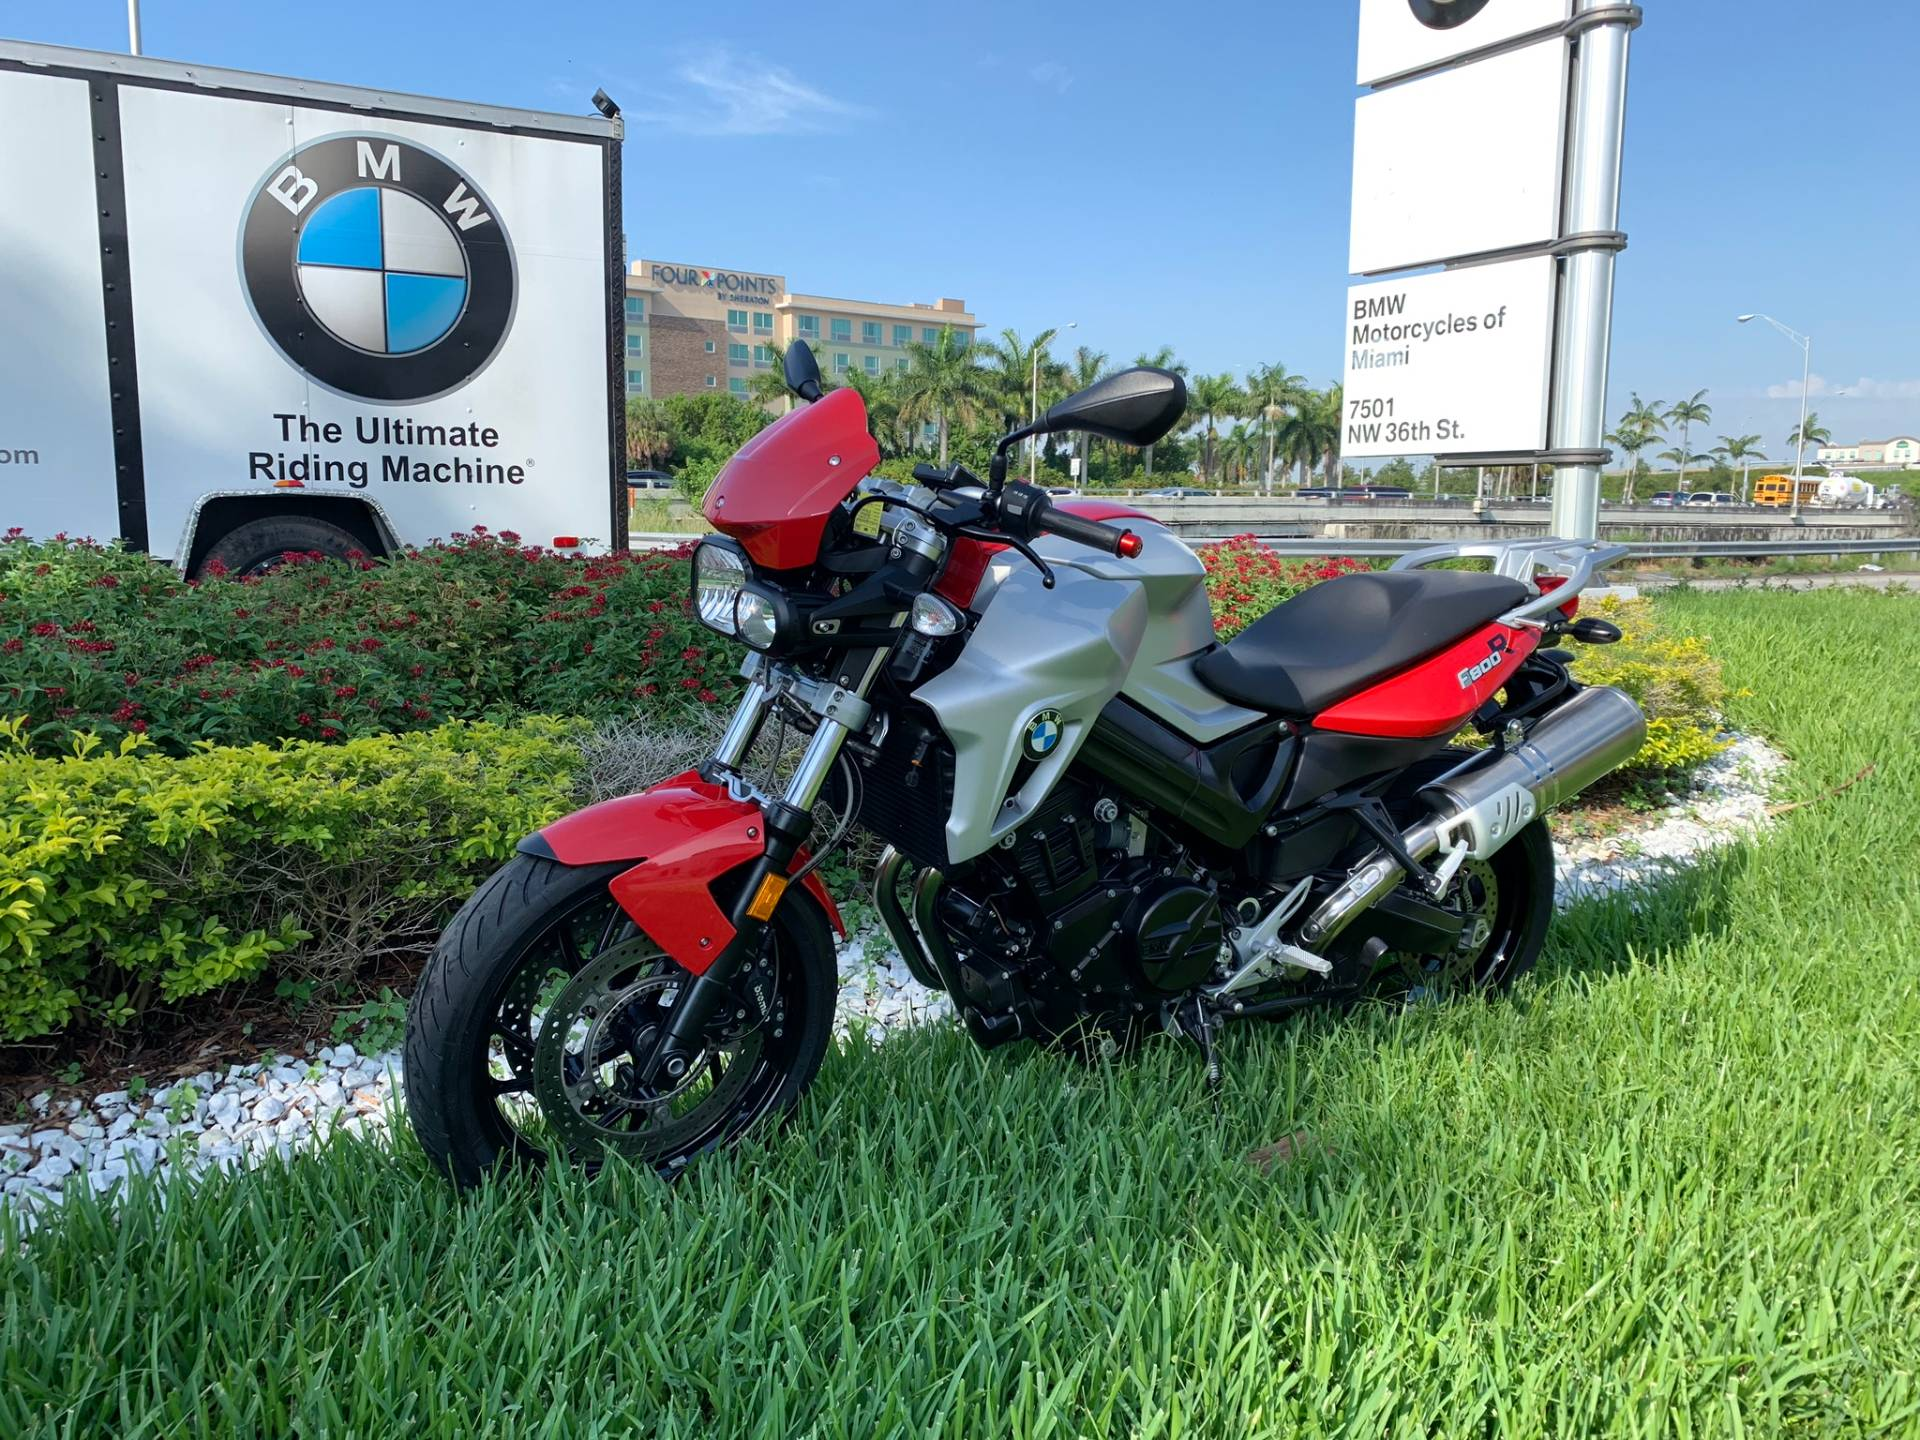 Used 2012 BMW F 800 R for sale, BMW F 800R for sale, BMW Motorcycle F800R, used BMW Roaster, Naked, 800, BMW. BMW Motorcycles of Miami, Motorcycles of Miami, Motorcycles Miami, New Motorcycles, Used Motorcycles, pre-owned. #BMWMotorcyclesOfMiami #MotorcyclesOfMiami. - Photo 5